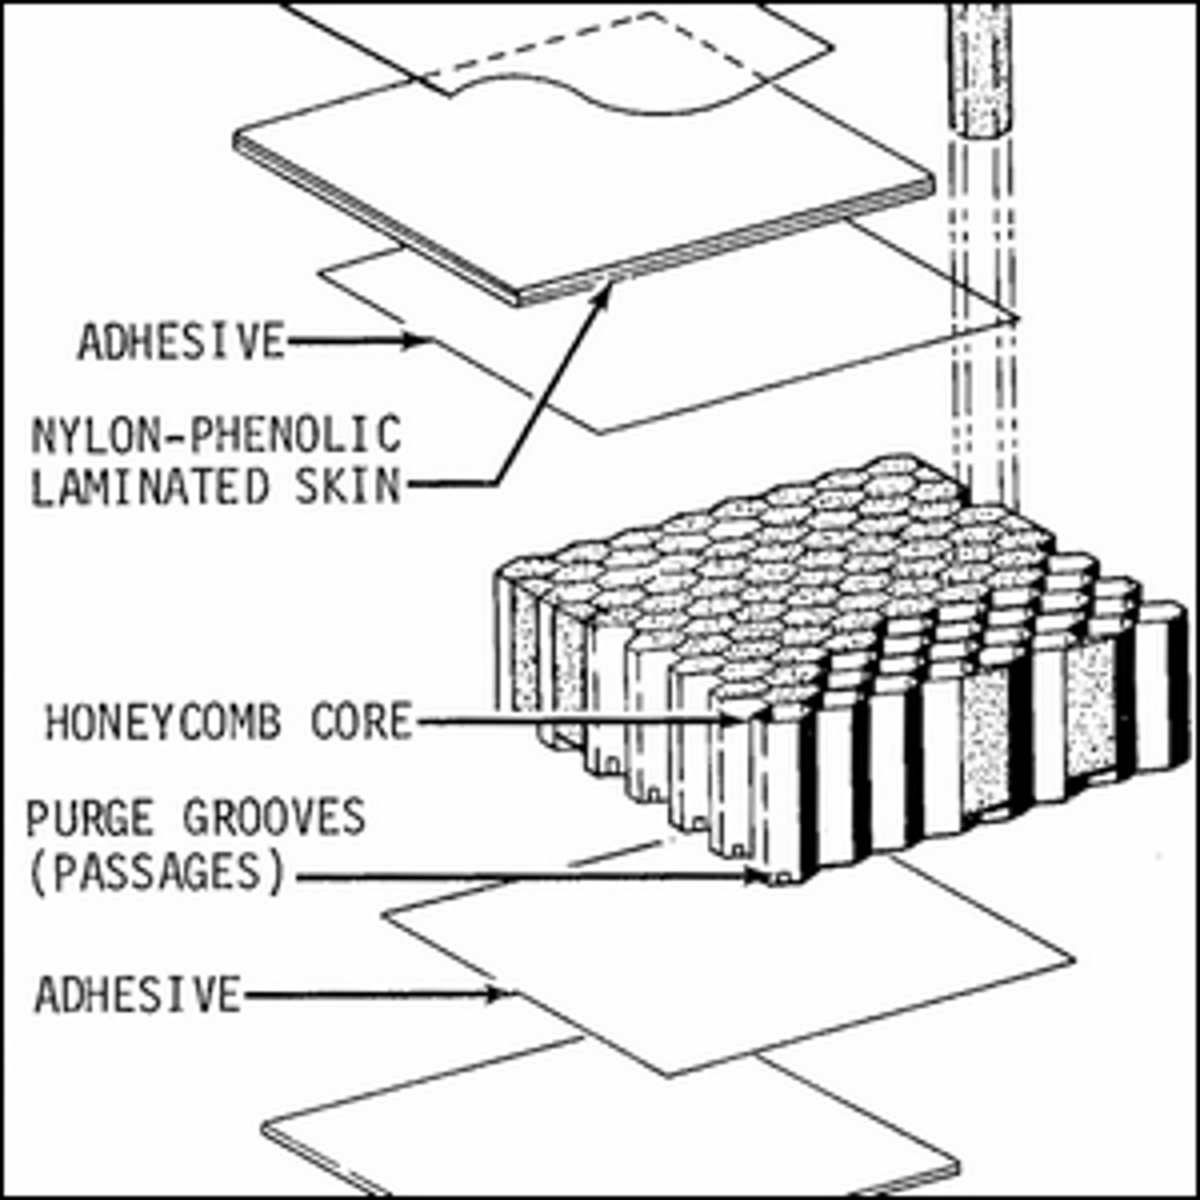 An exploded view diagram of the honeycomb insulation and the layers around it.